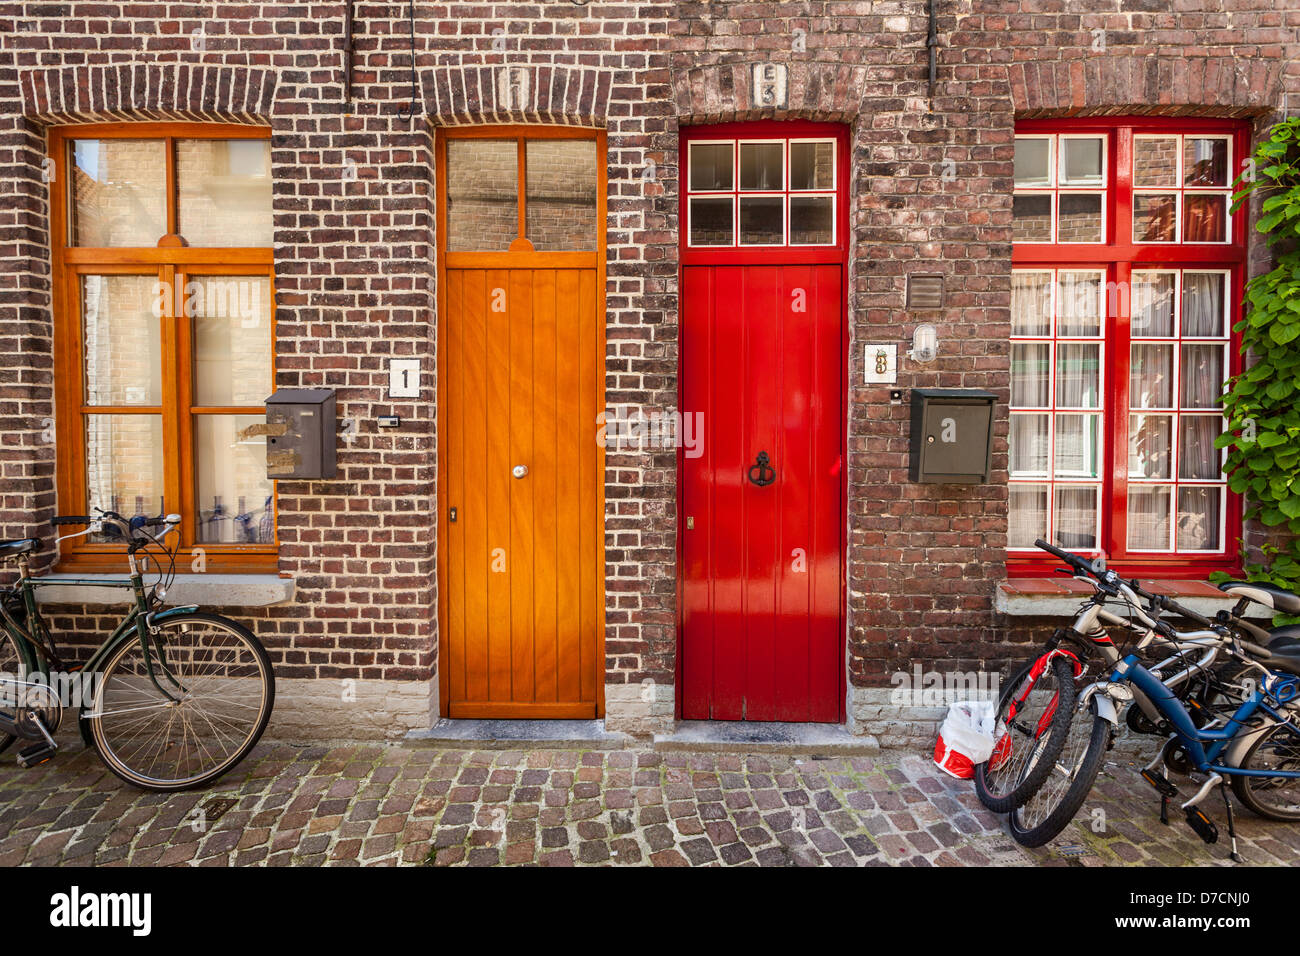 Doors of old houses and bicycles in european city. Bruges (Brugge), Belgium - Stock Image